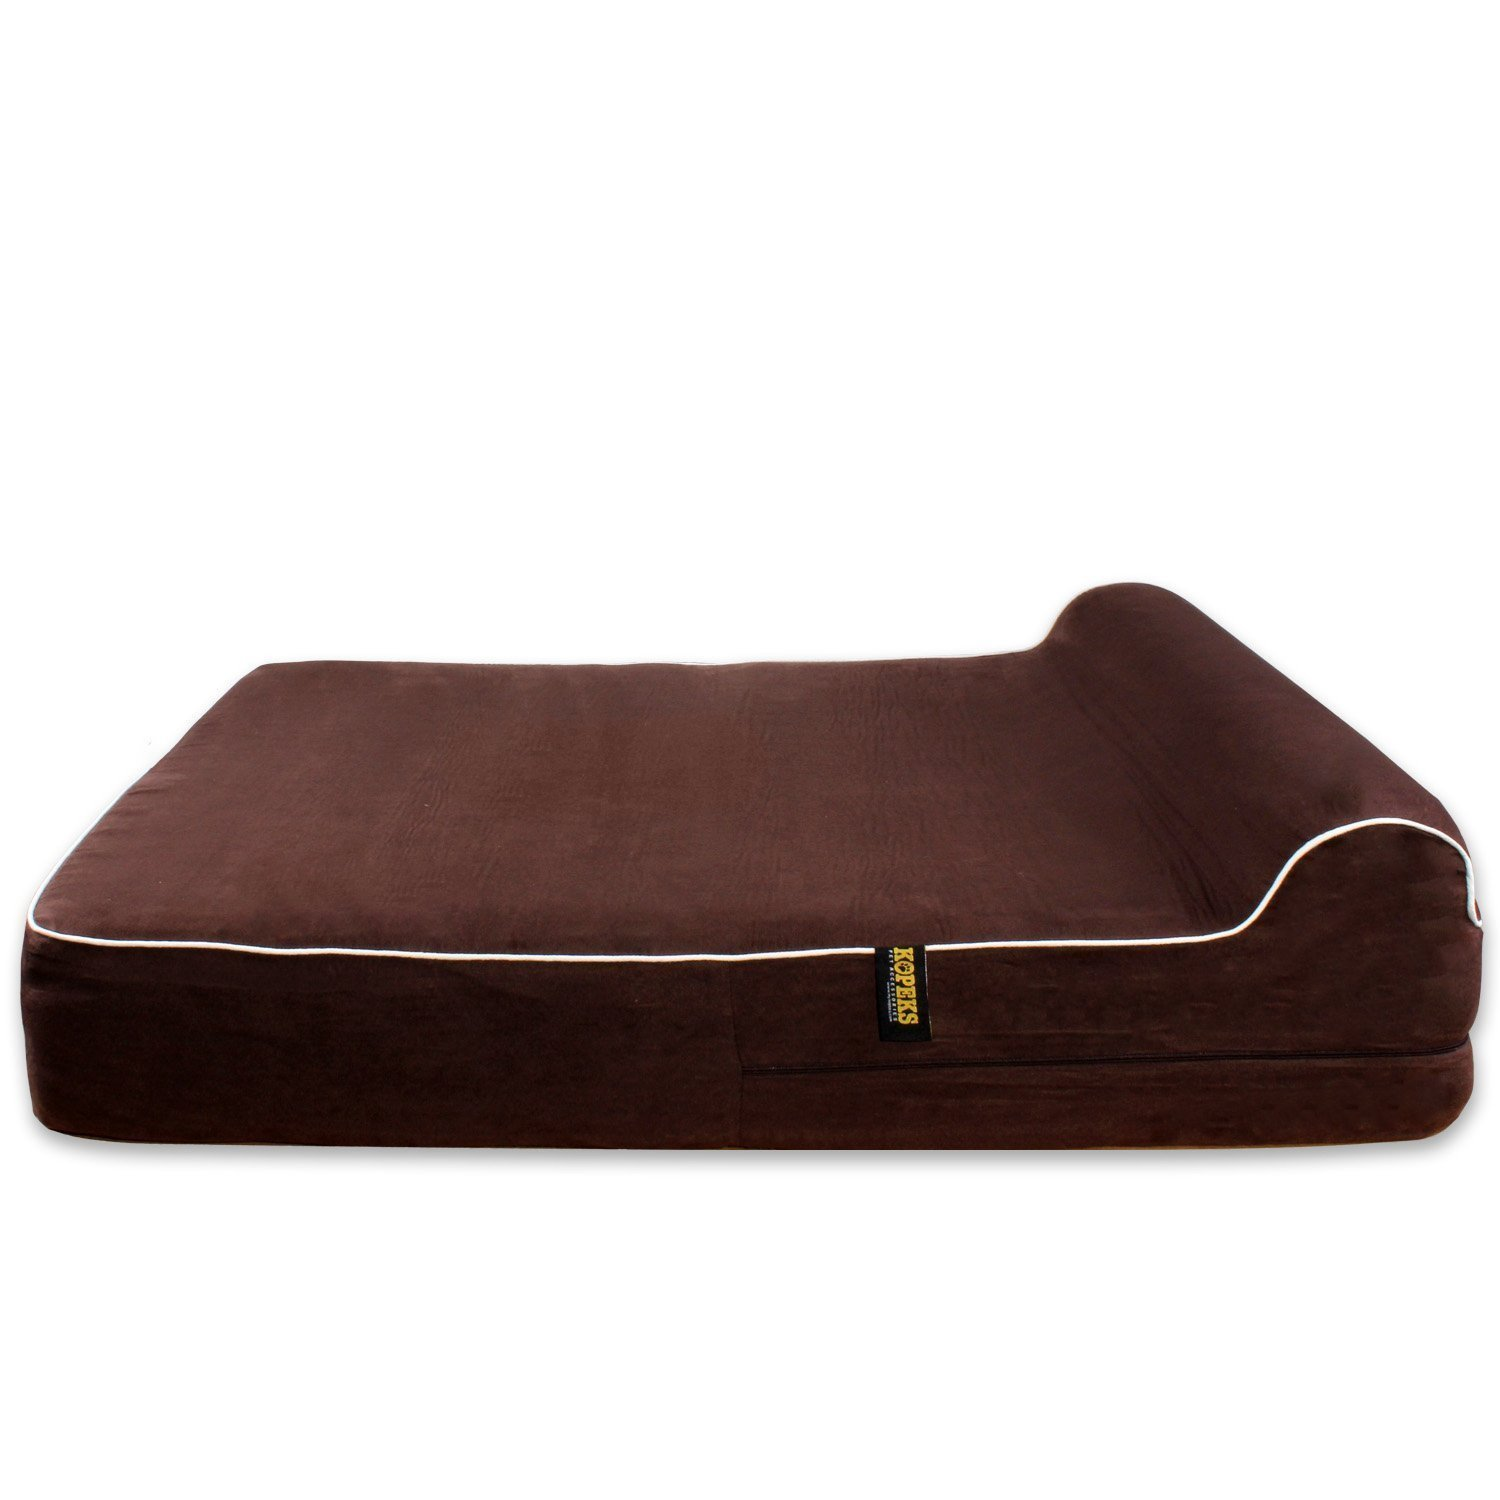 Dog Bed Replacement Cover for KOPEKS Memory Foam Beds - Brown - Extra Large (JUMBO Size)